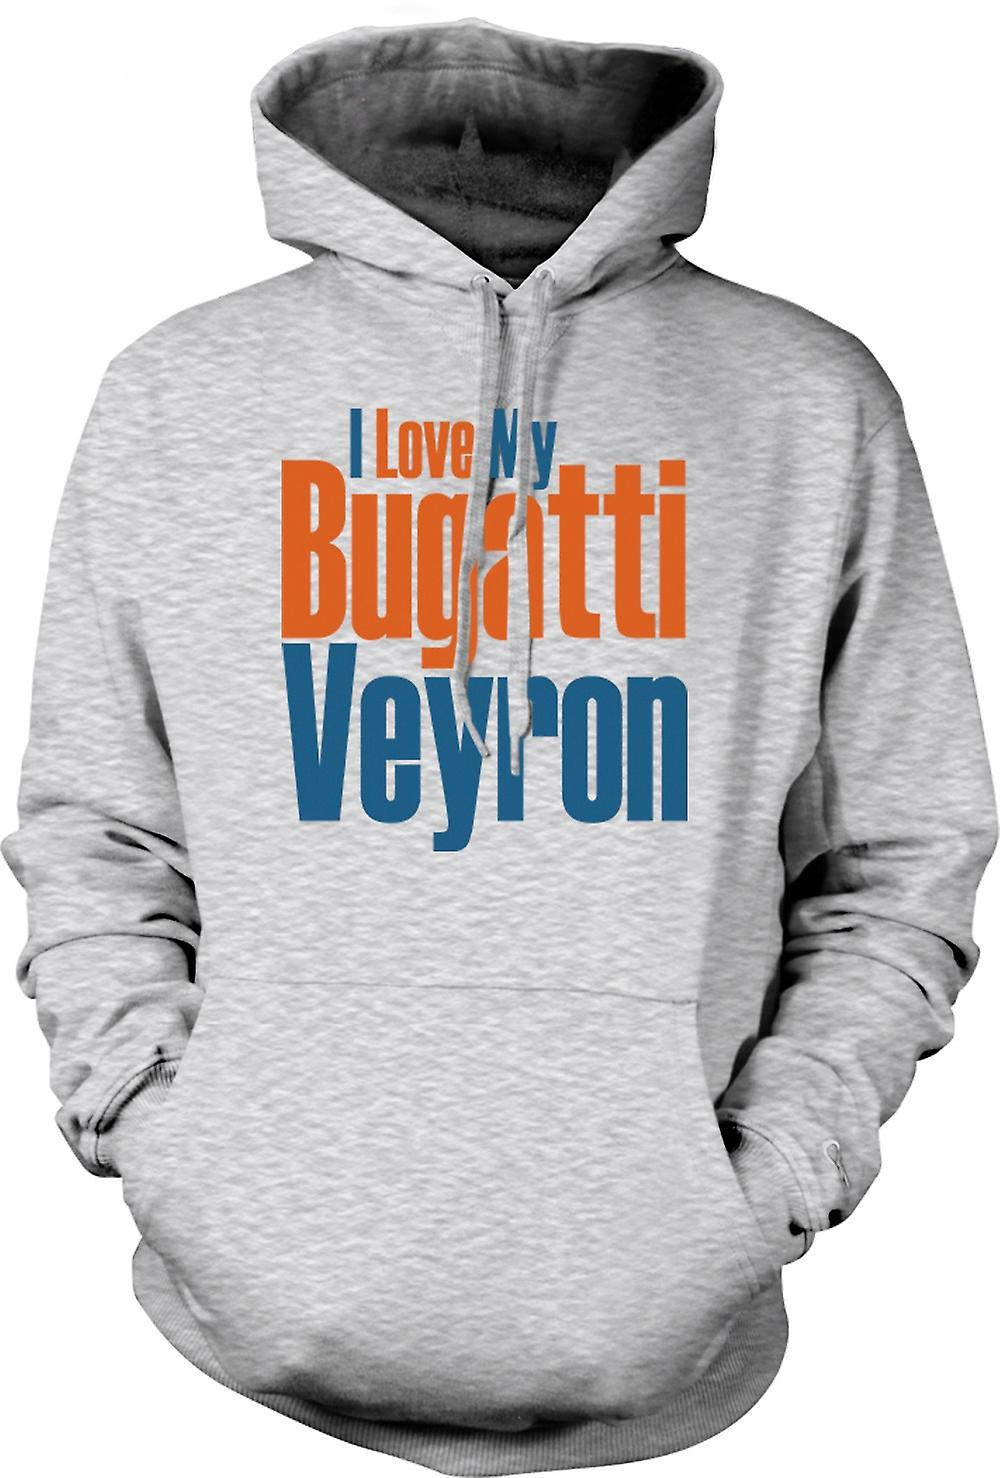 Mens Hoodie - I Love My Bugatti Veyron - Car Enthusiast